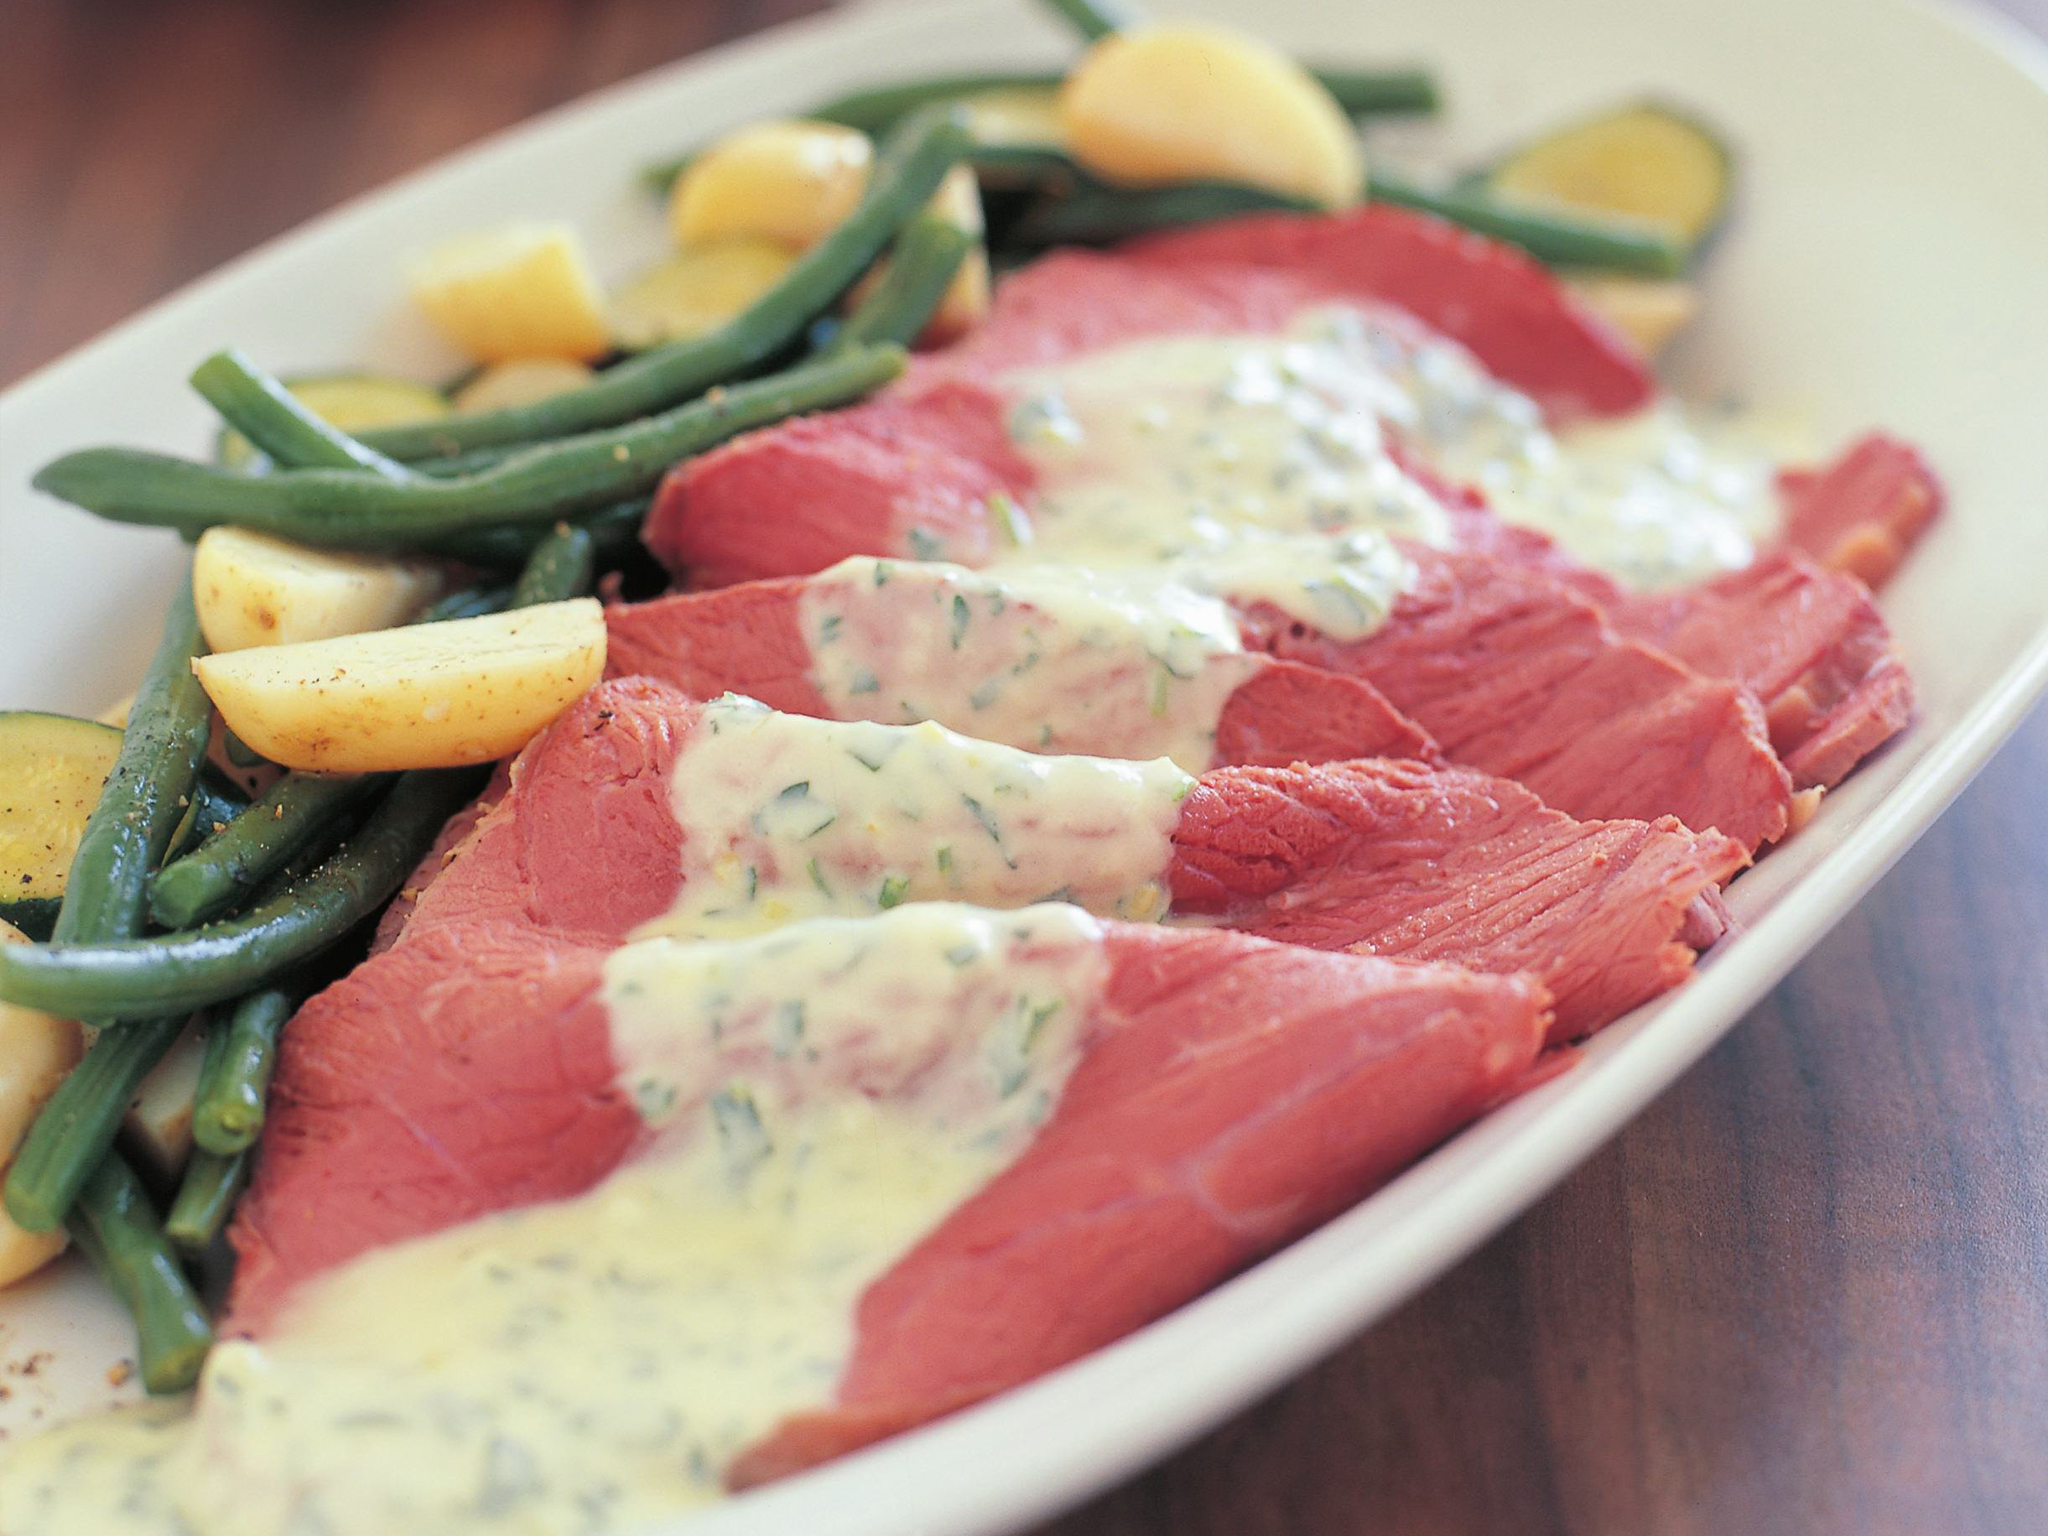 Traditional corned beef with horseradish white sauce recipe ..